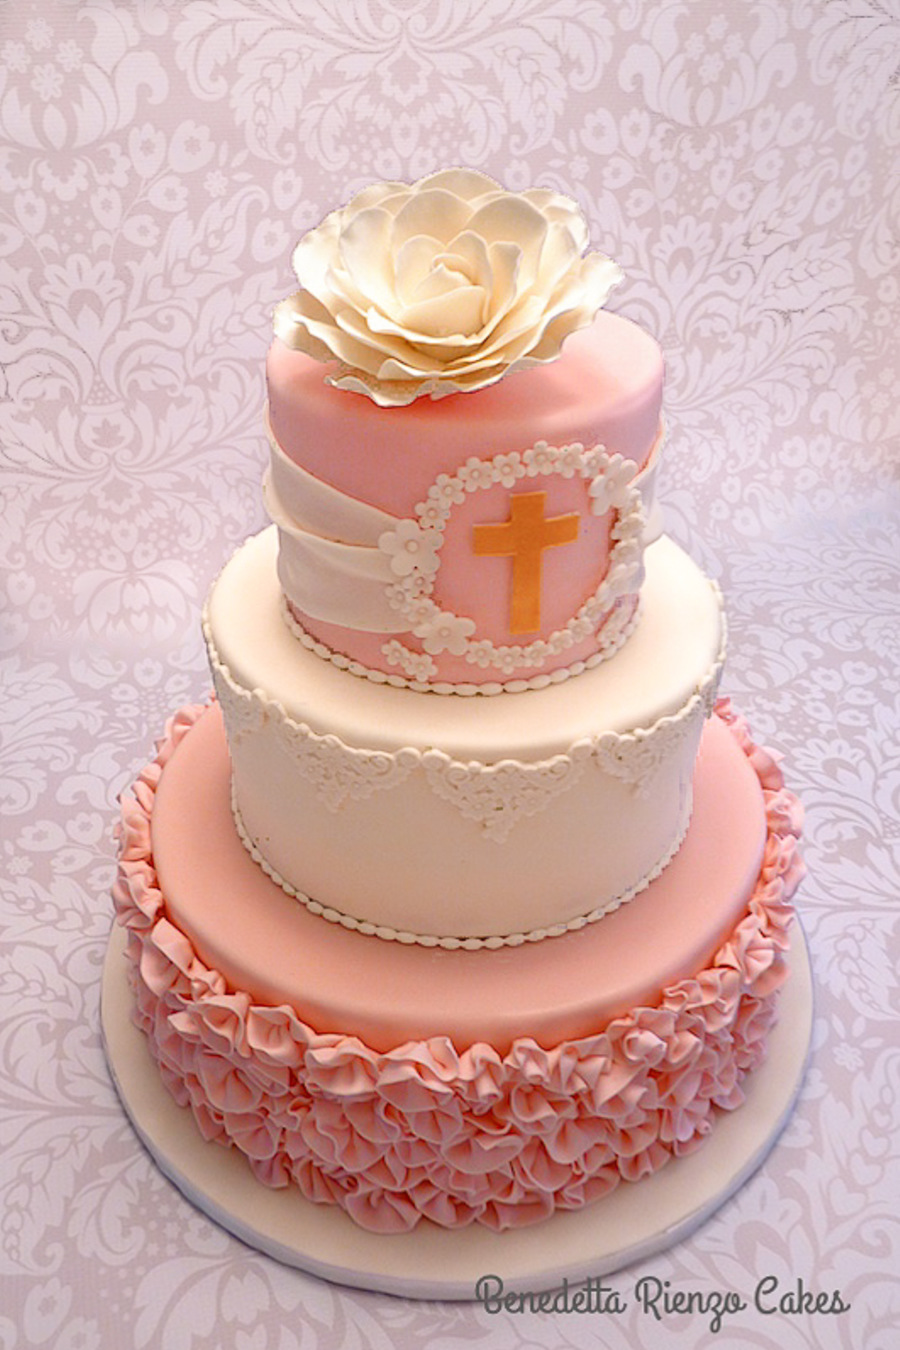 Ribbon Rose Communion Cake Cakecentral Com